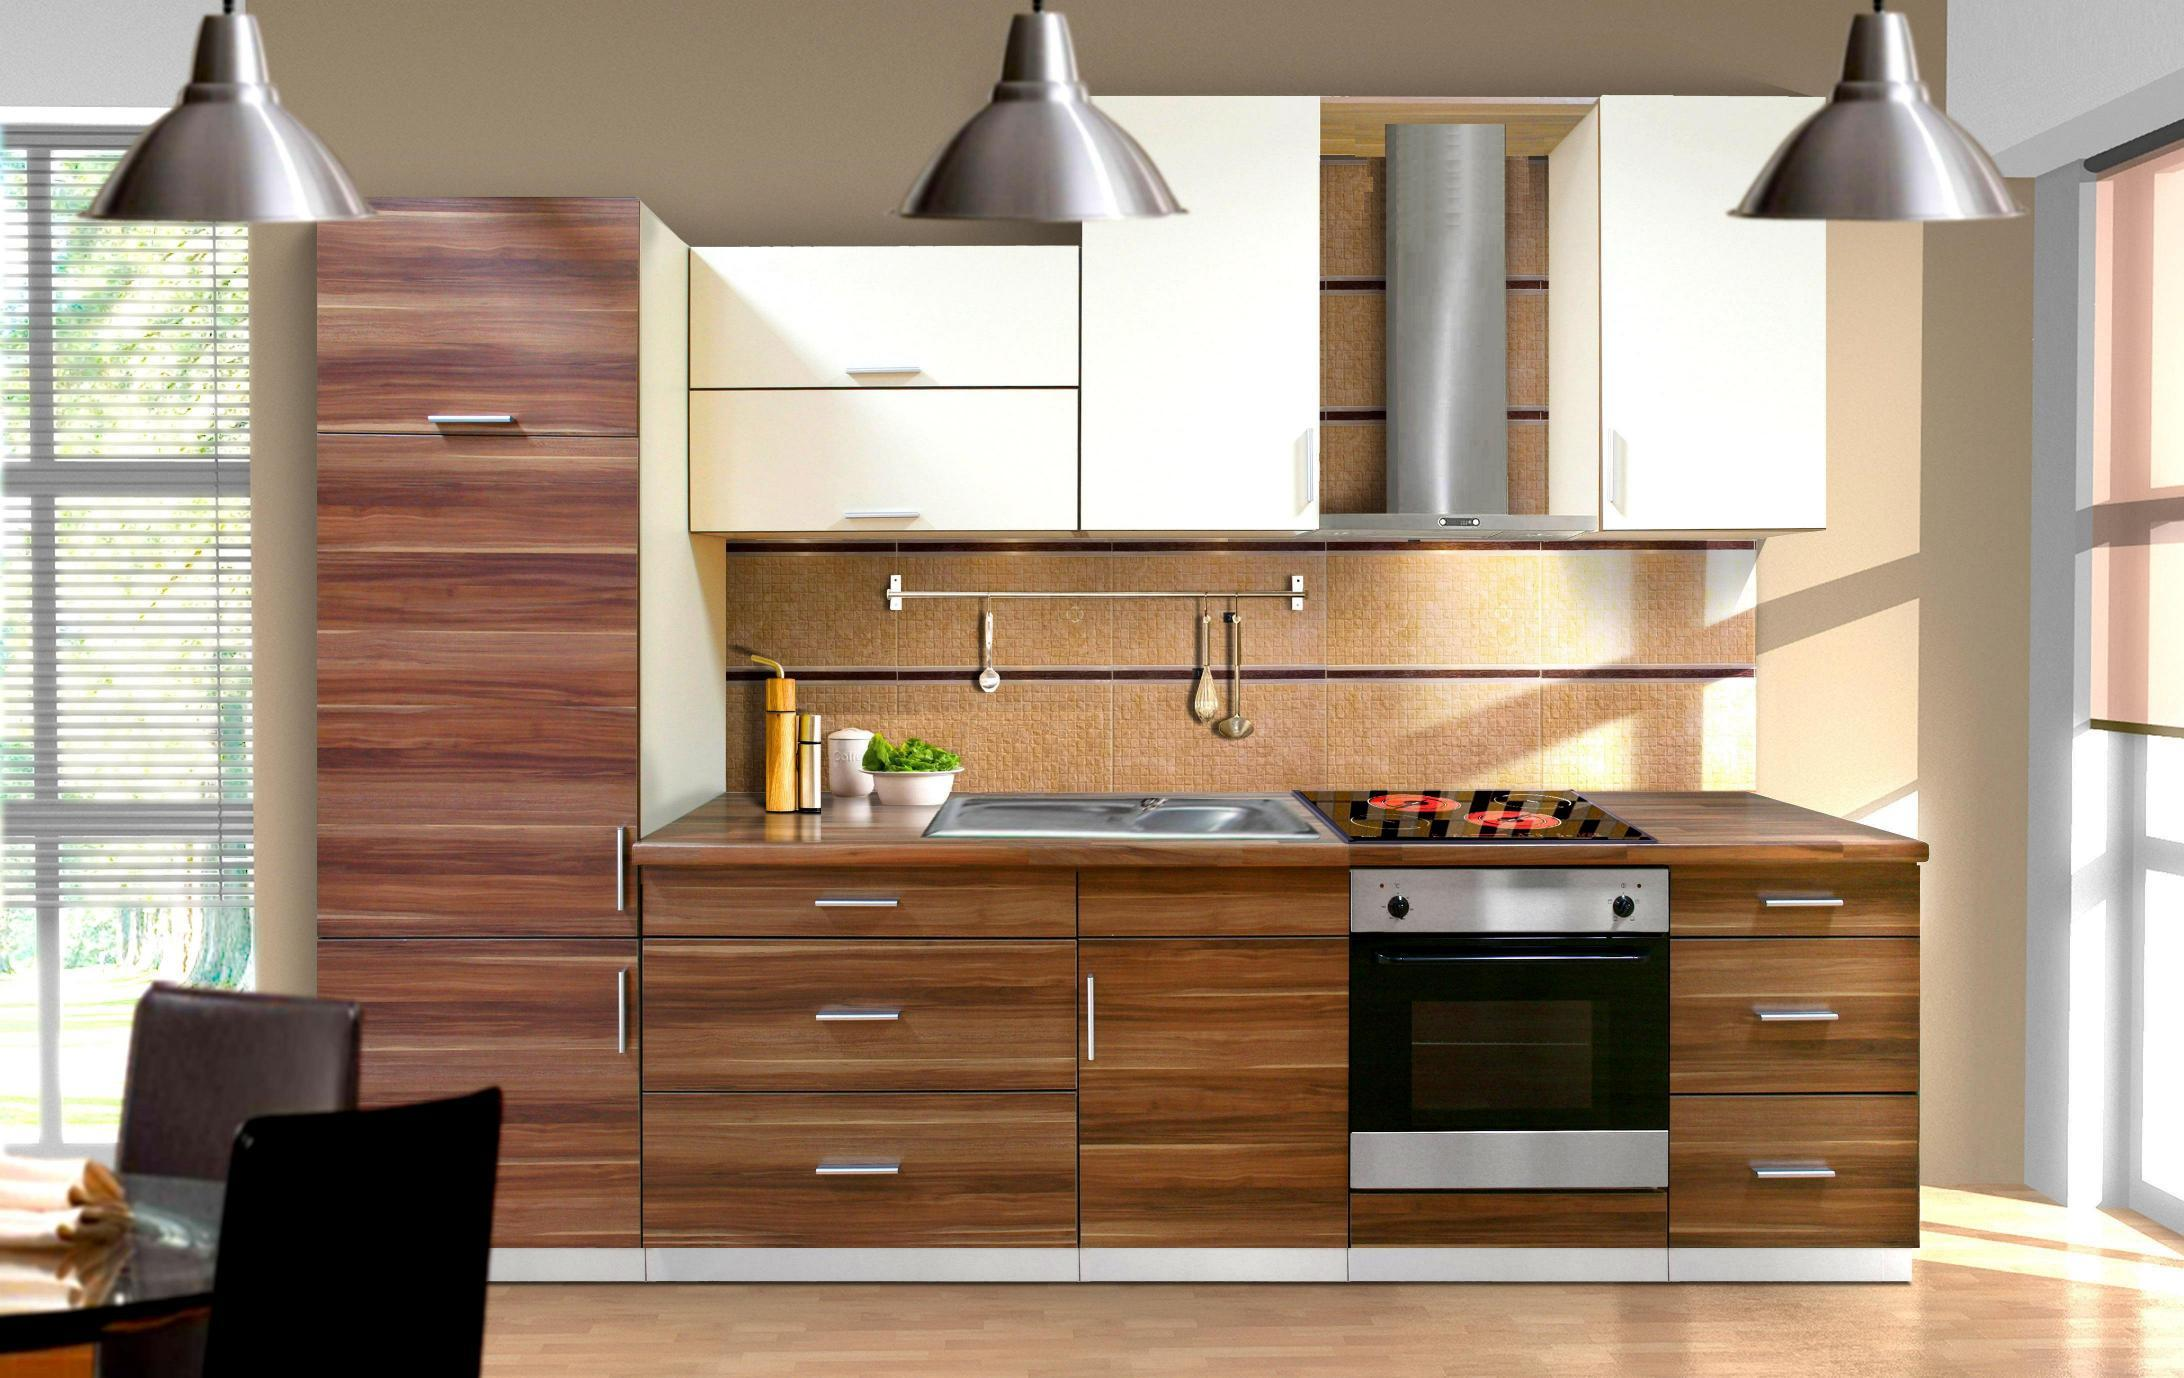 Dark Kitchen Cabinets Kitchen Cabinets Online Mica Countertops Painting Formica Cabinets Small Kitchen Cabinets